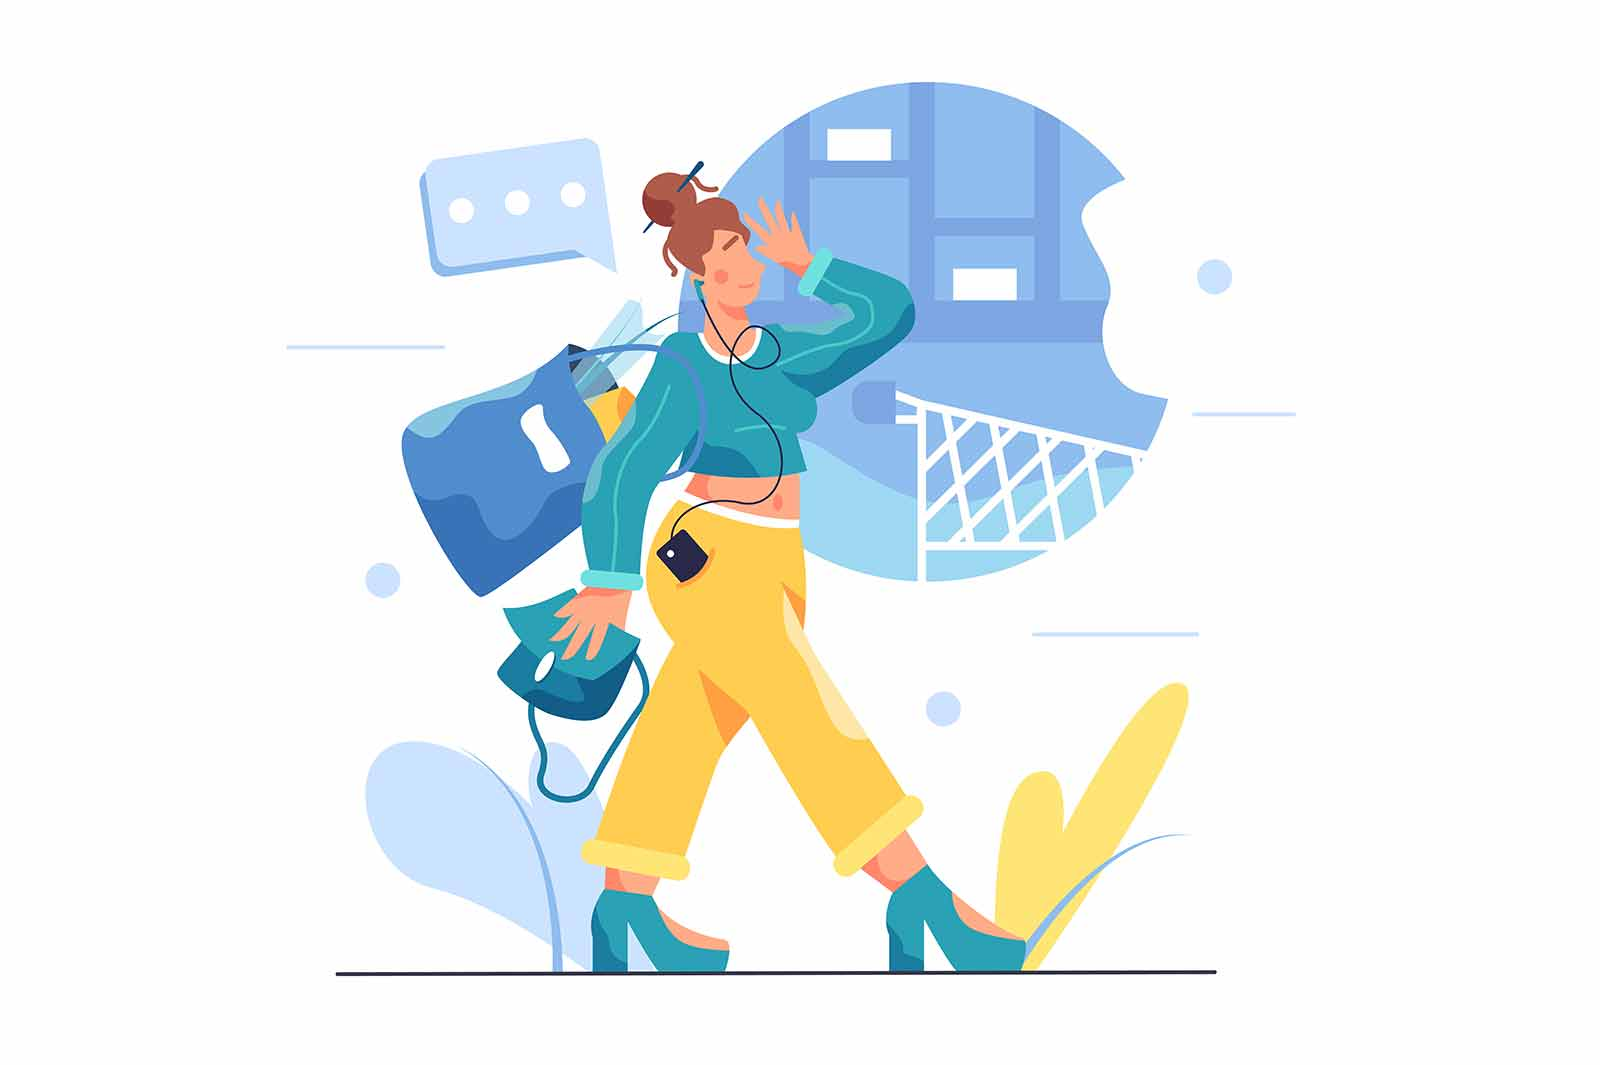 Girl walking from the store with a bag full of groceries, the girl carries a bag in her hand, wearing headphones, isolated on white background, flat vector illustration